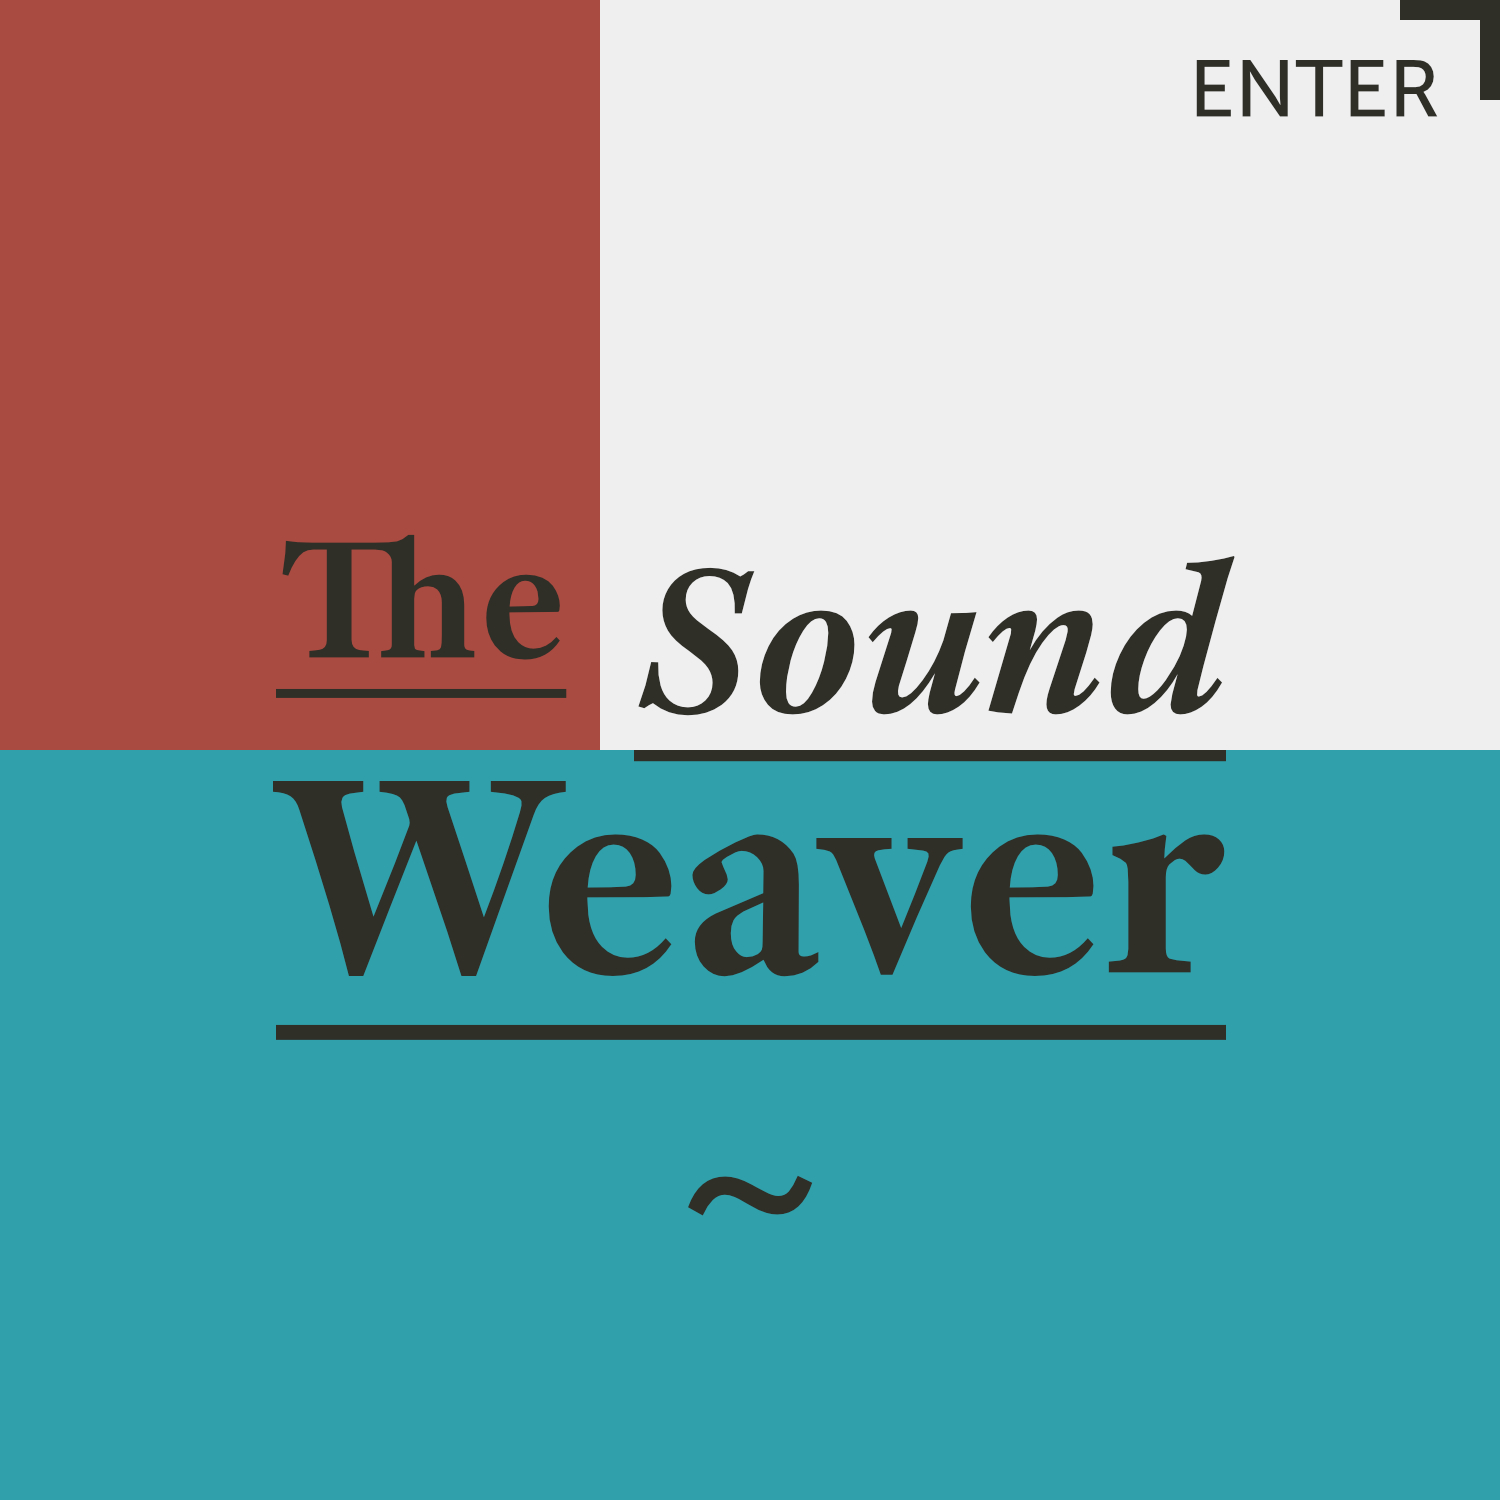 the_sound_weaver_performance_brunswick_australia.jpg